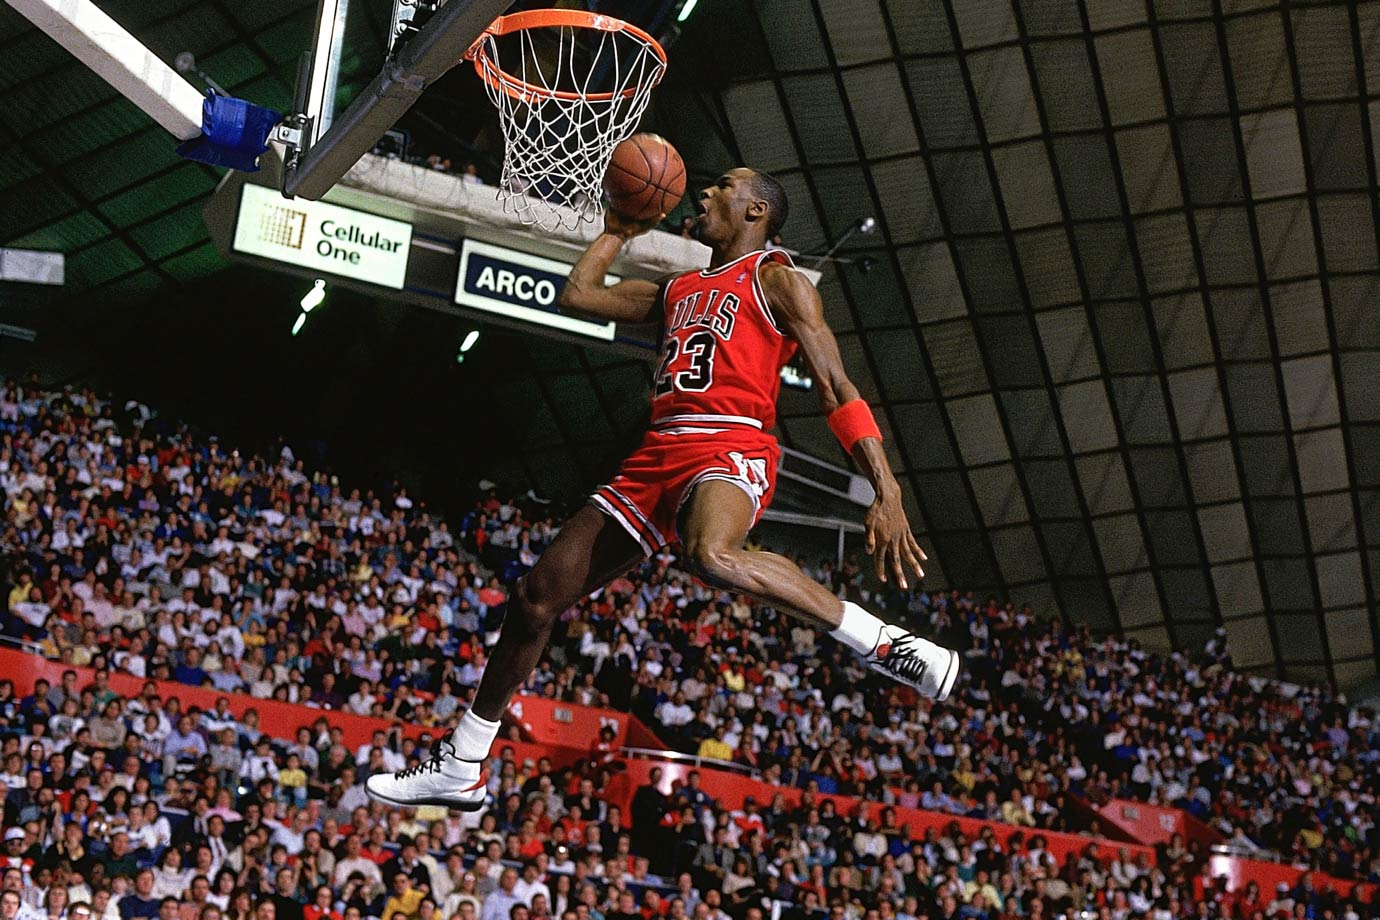 "Jordan won his first dunk contest in a competition missing the previous two winners (Dominique Wilkins and Spud Webb) because of injuries. ""There was adrenaline pumping through my body today that was unexplainable,"" Jordan told reporters after defeating Jerome Kersey in the finals."